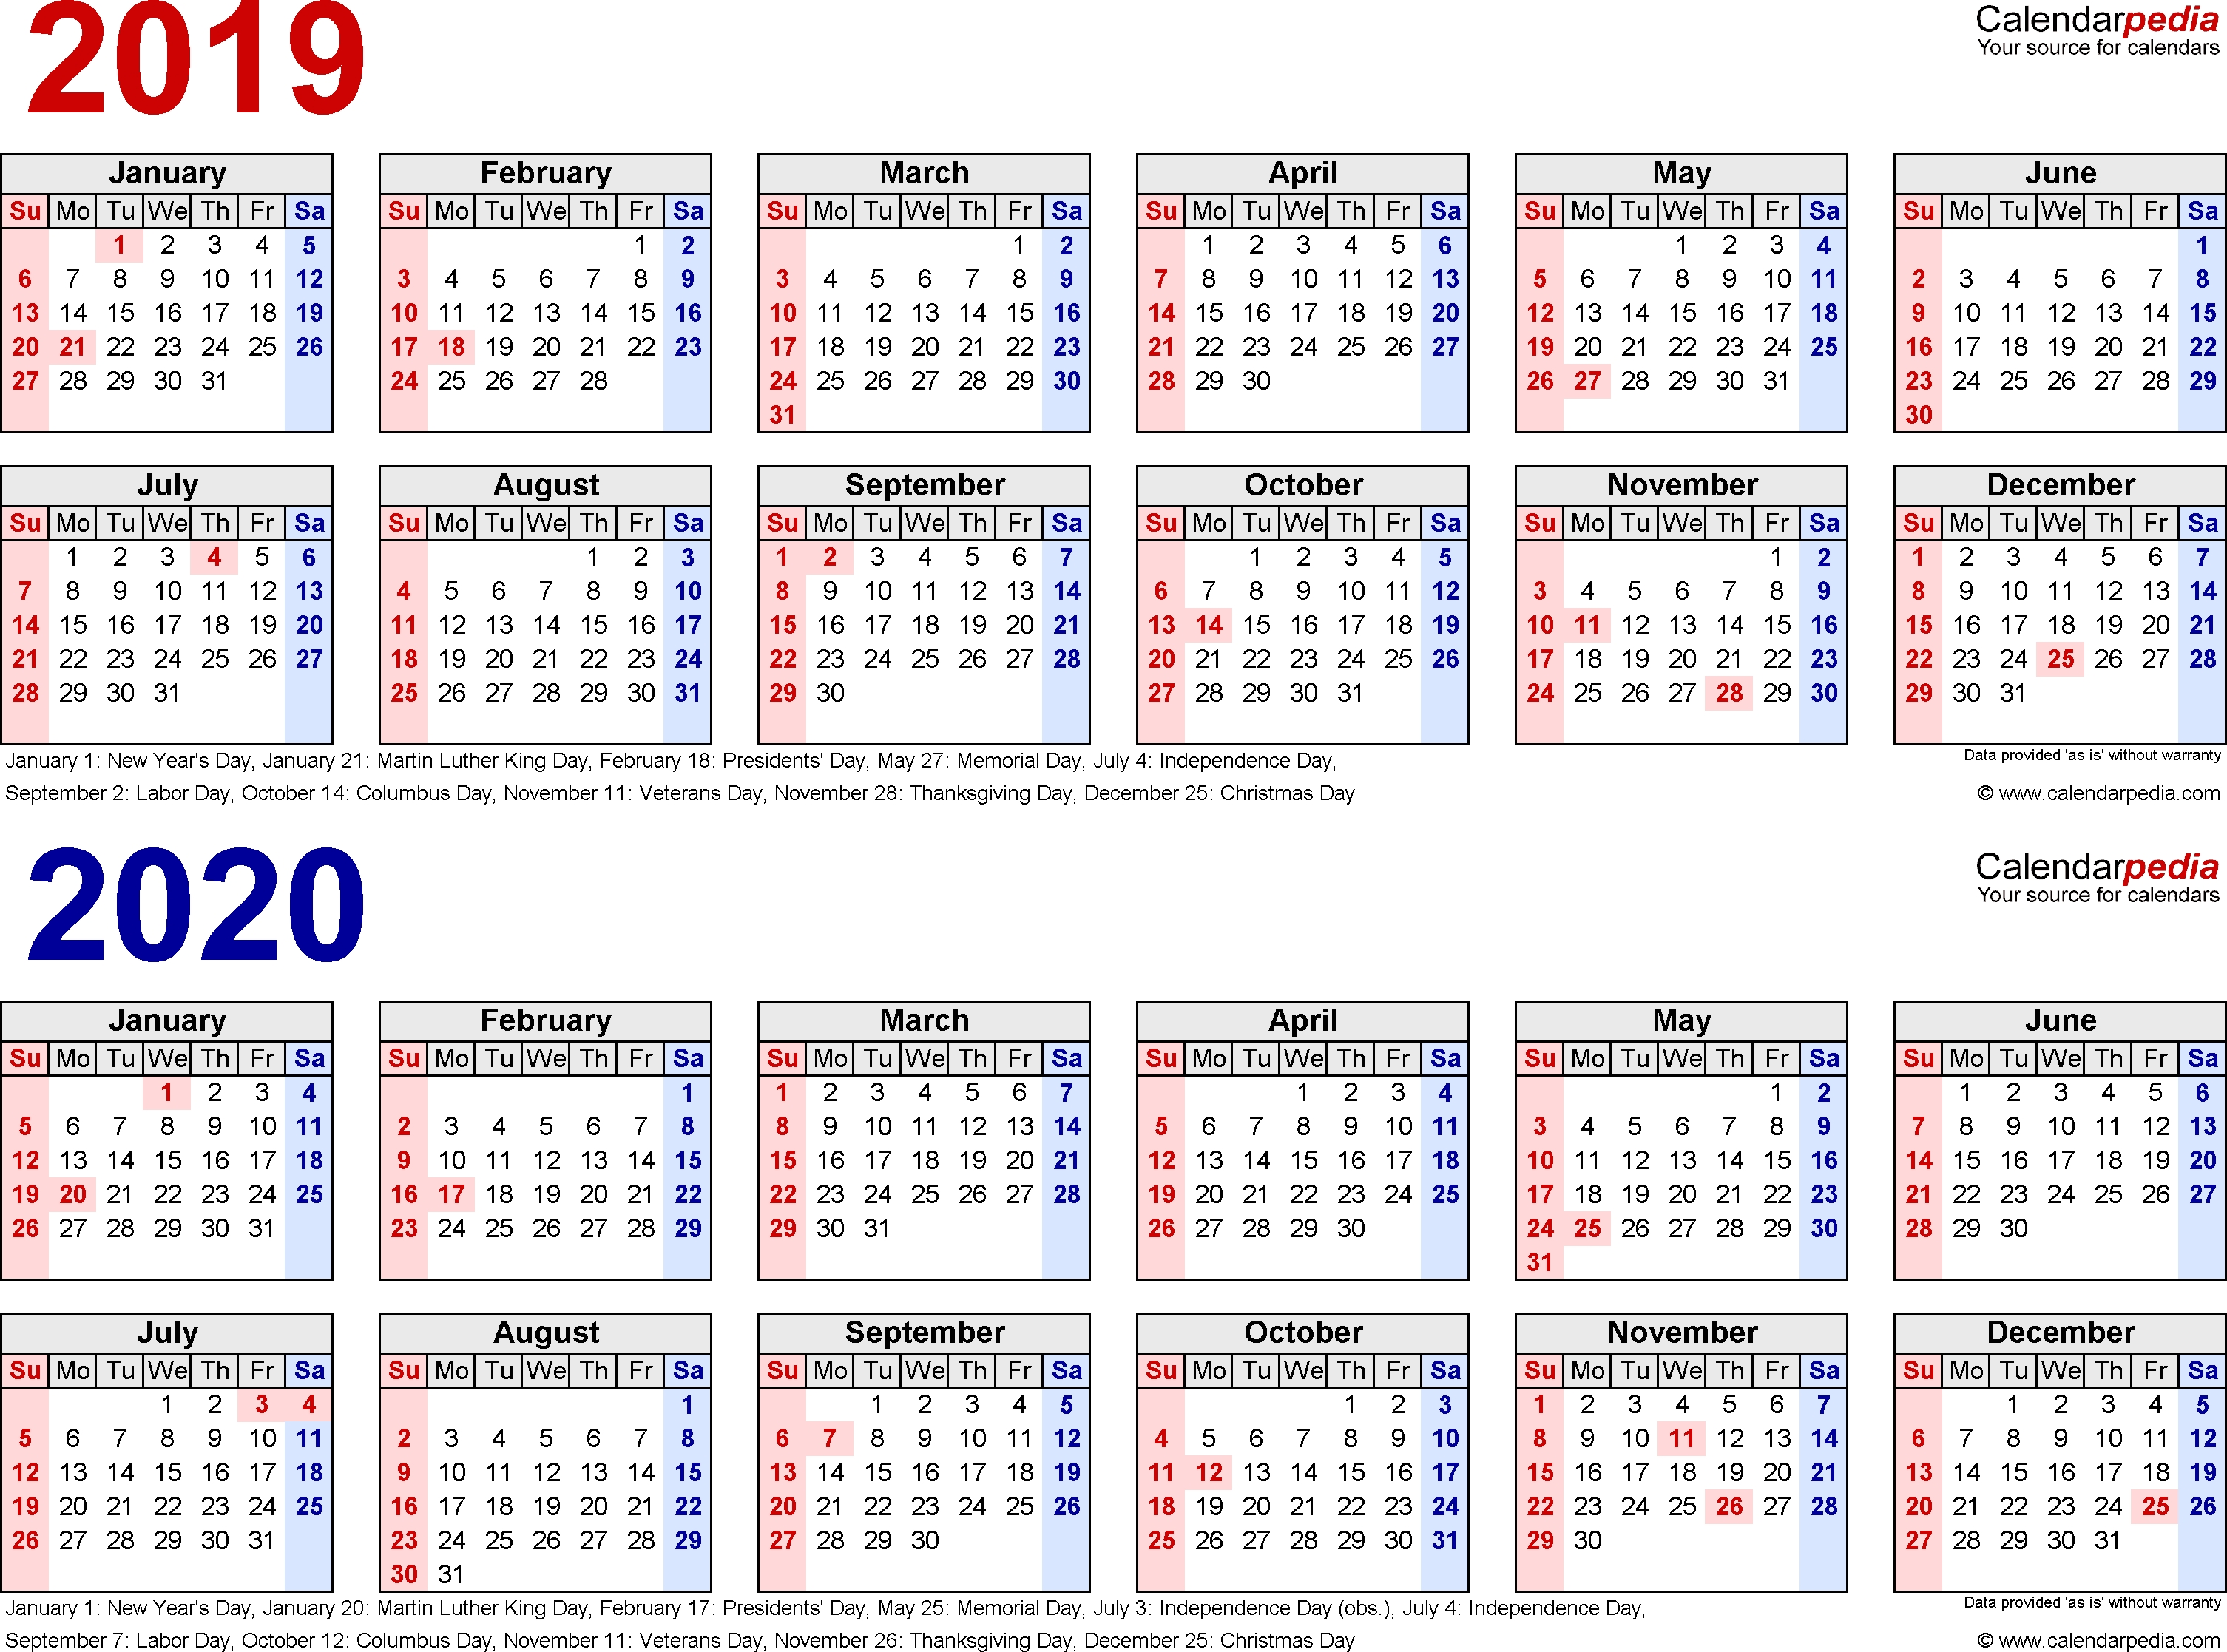 2019-2020 Two Year Calendar - Free Printable Microsoft Excel within Calendar With Week Numbers 2019/2020